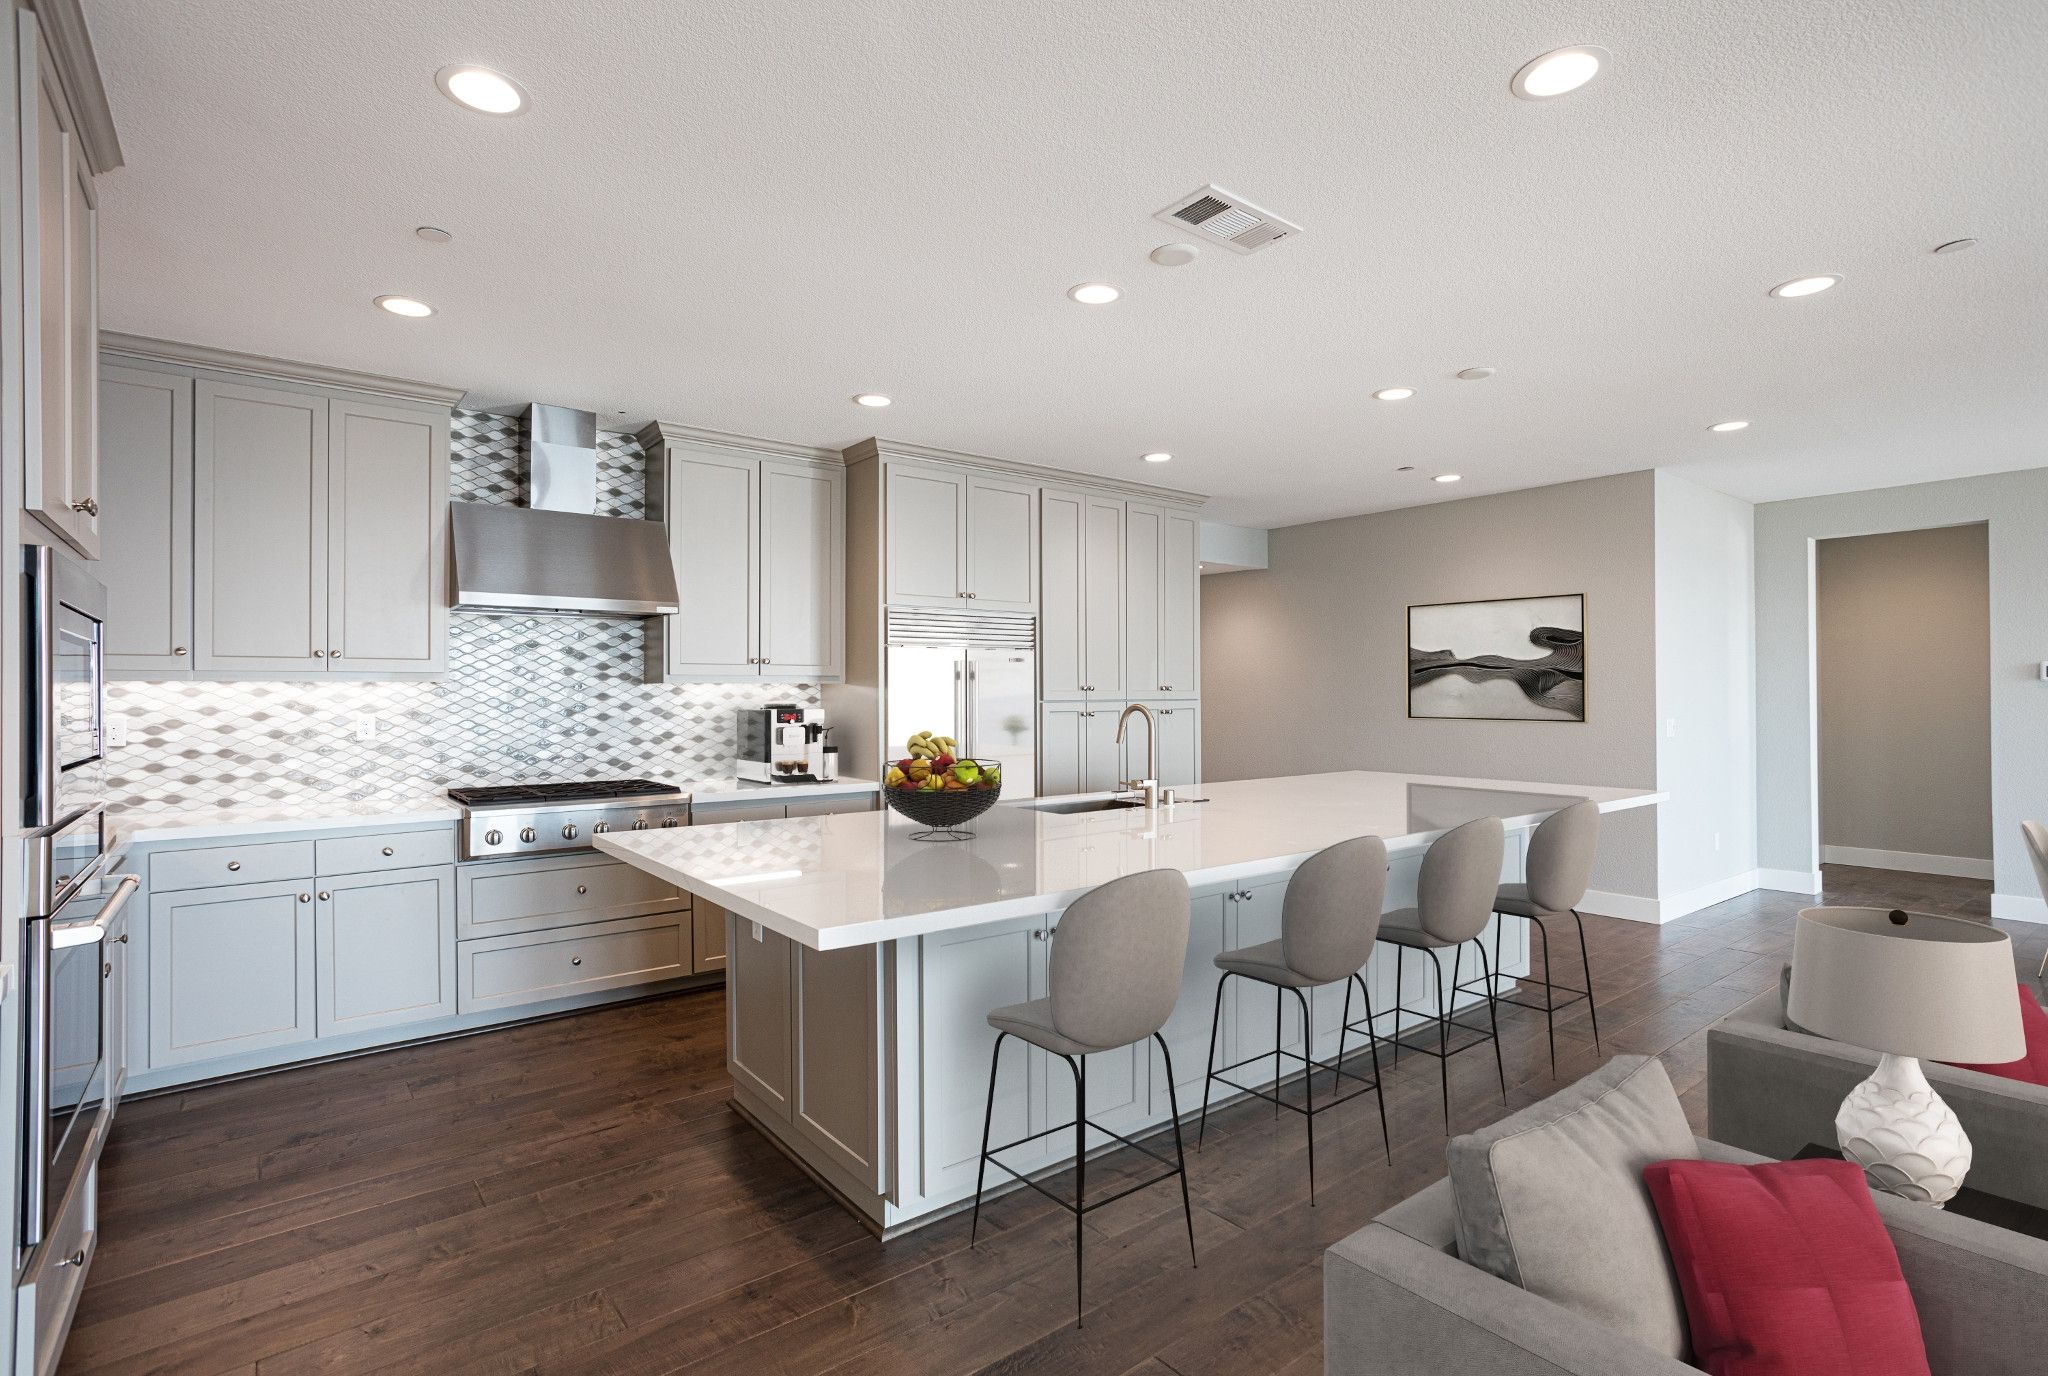 Kitchen featured in the Plan 4E By Shea Homes in Oakland-Alameda, CA